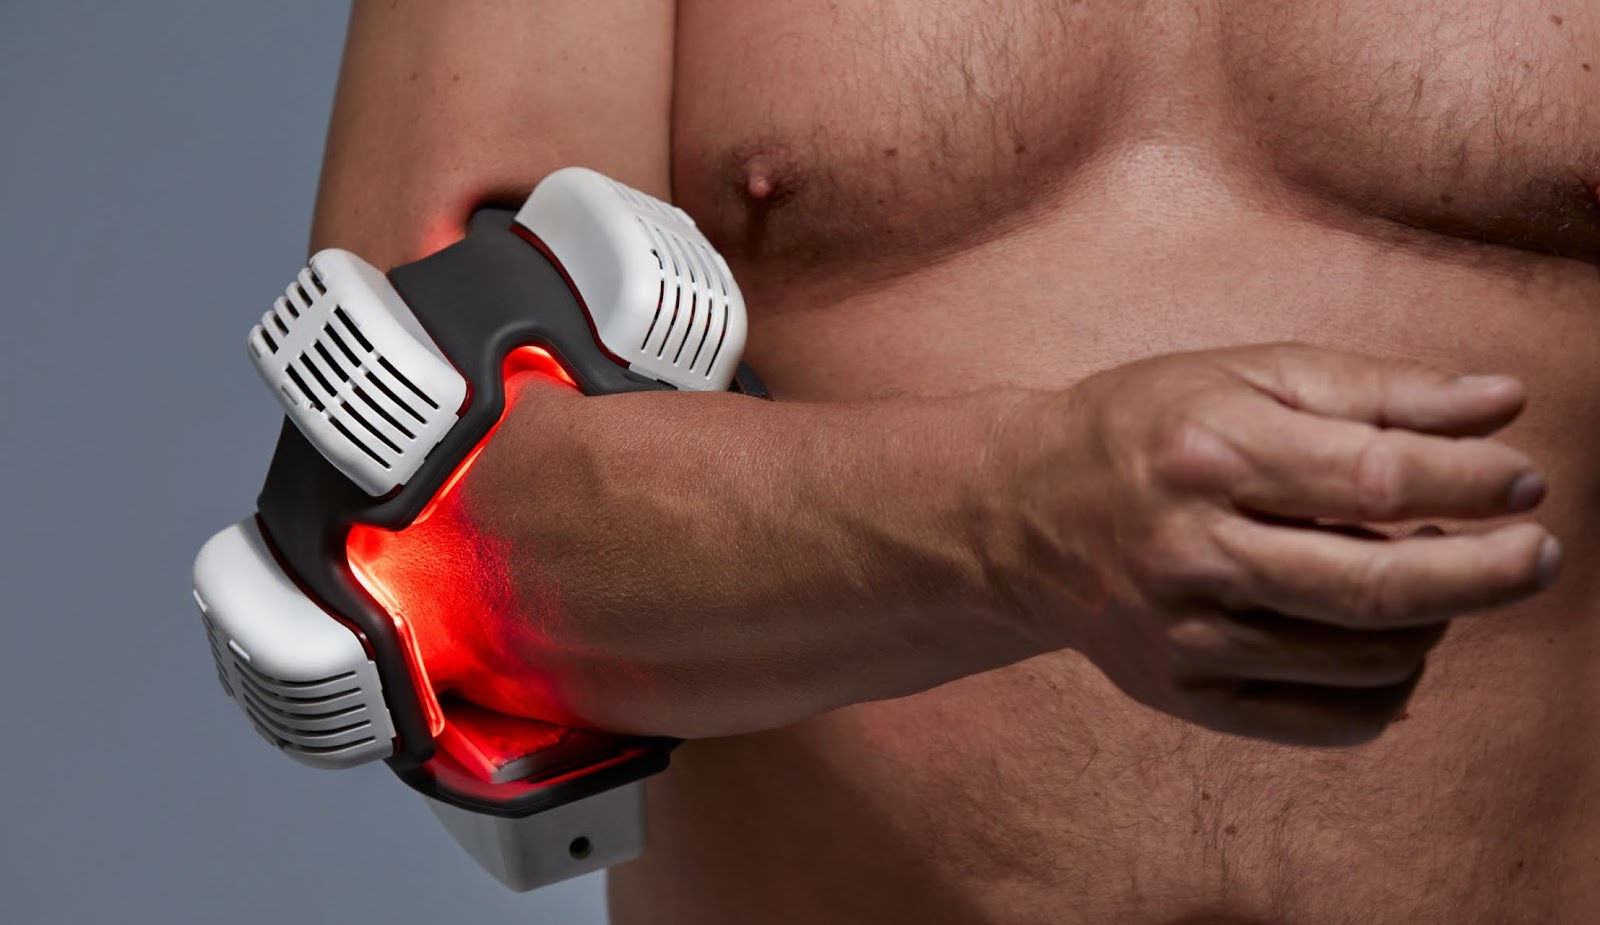 red-light-therapy-flexbeam-on-elbow